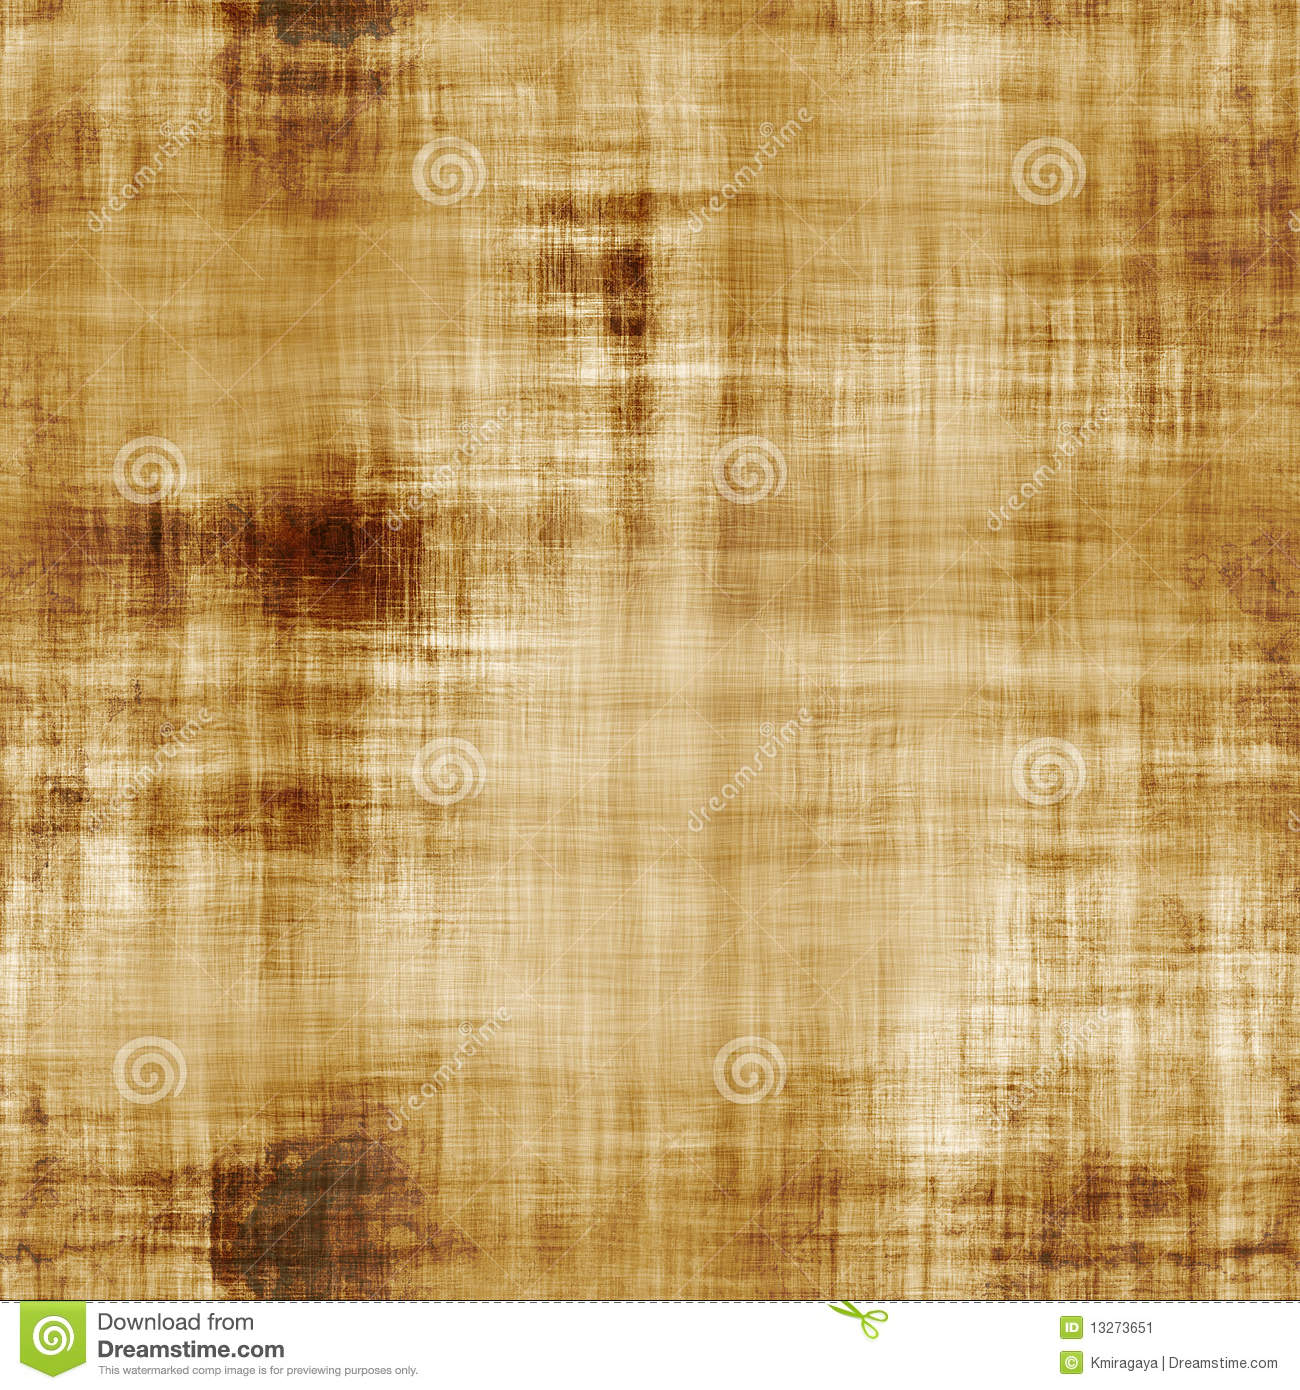 Seamless old canvas texture